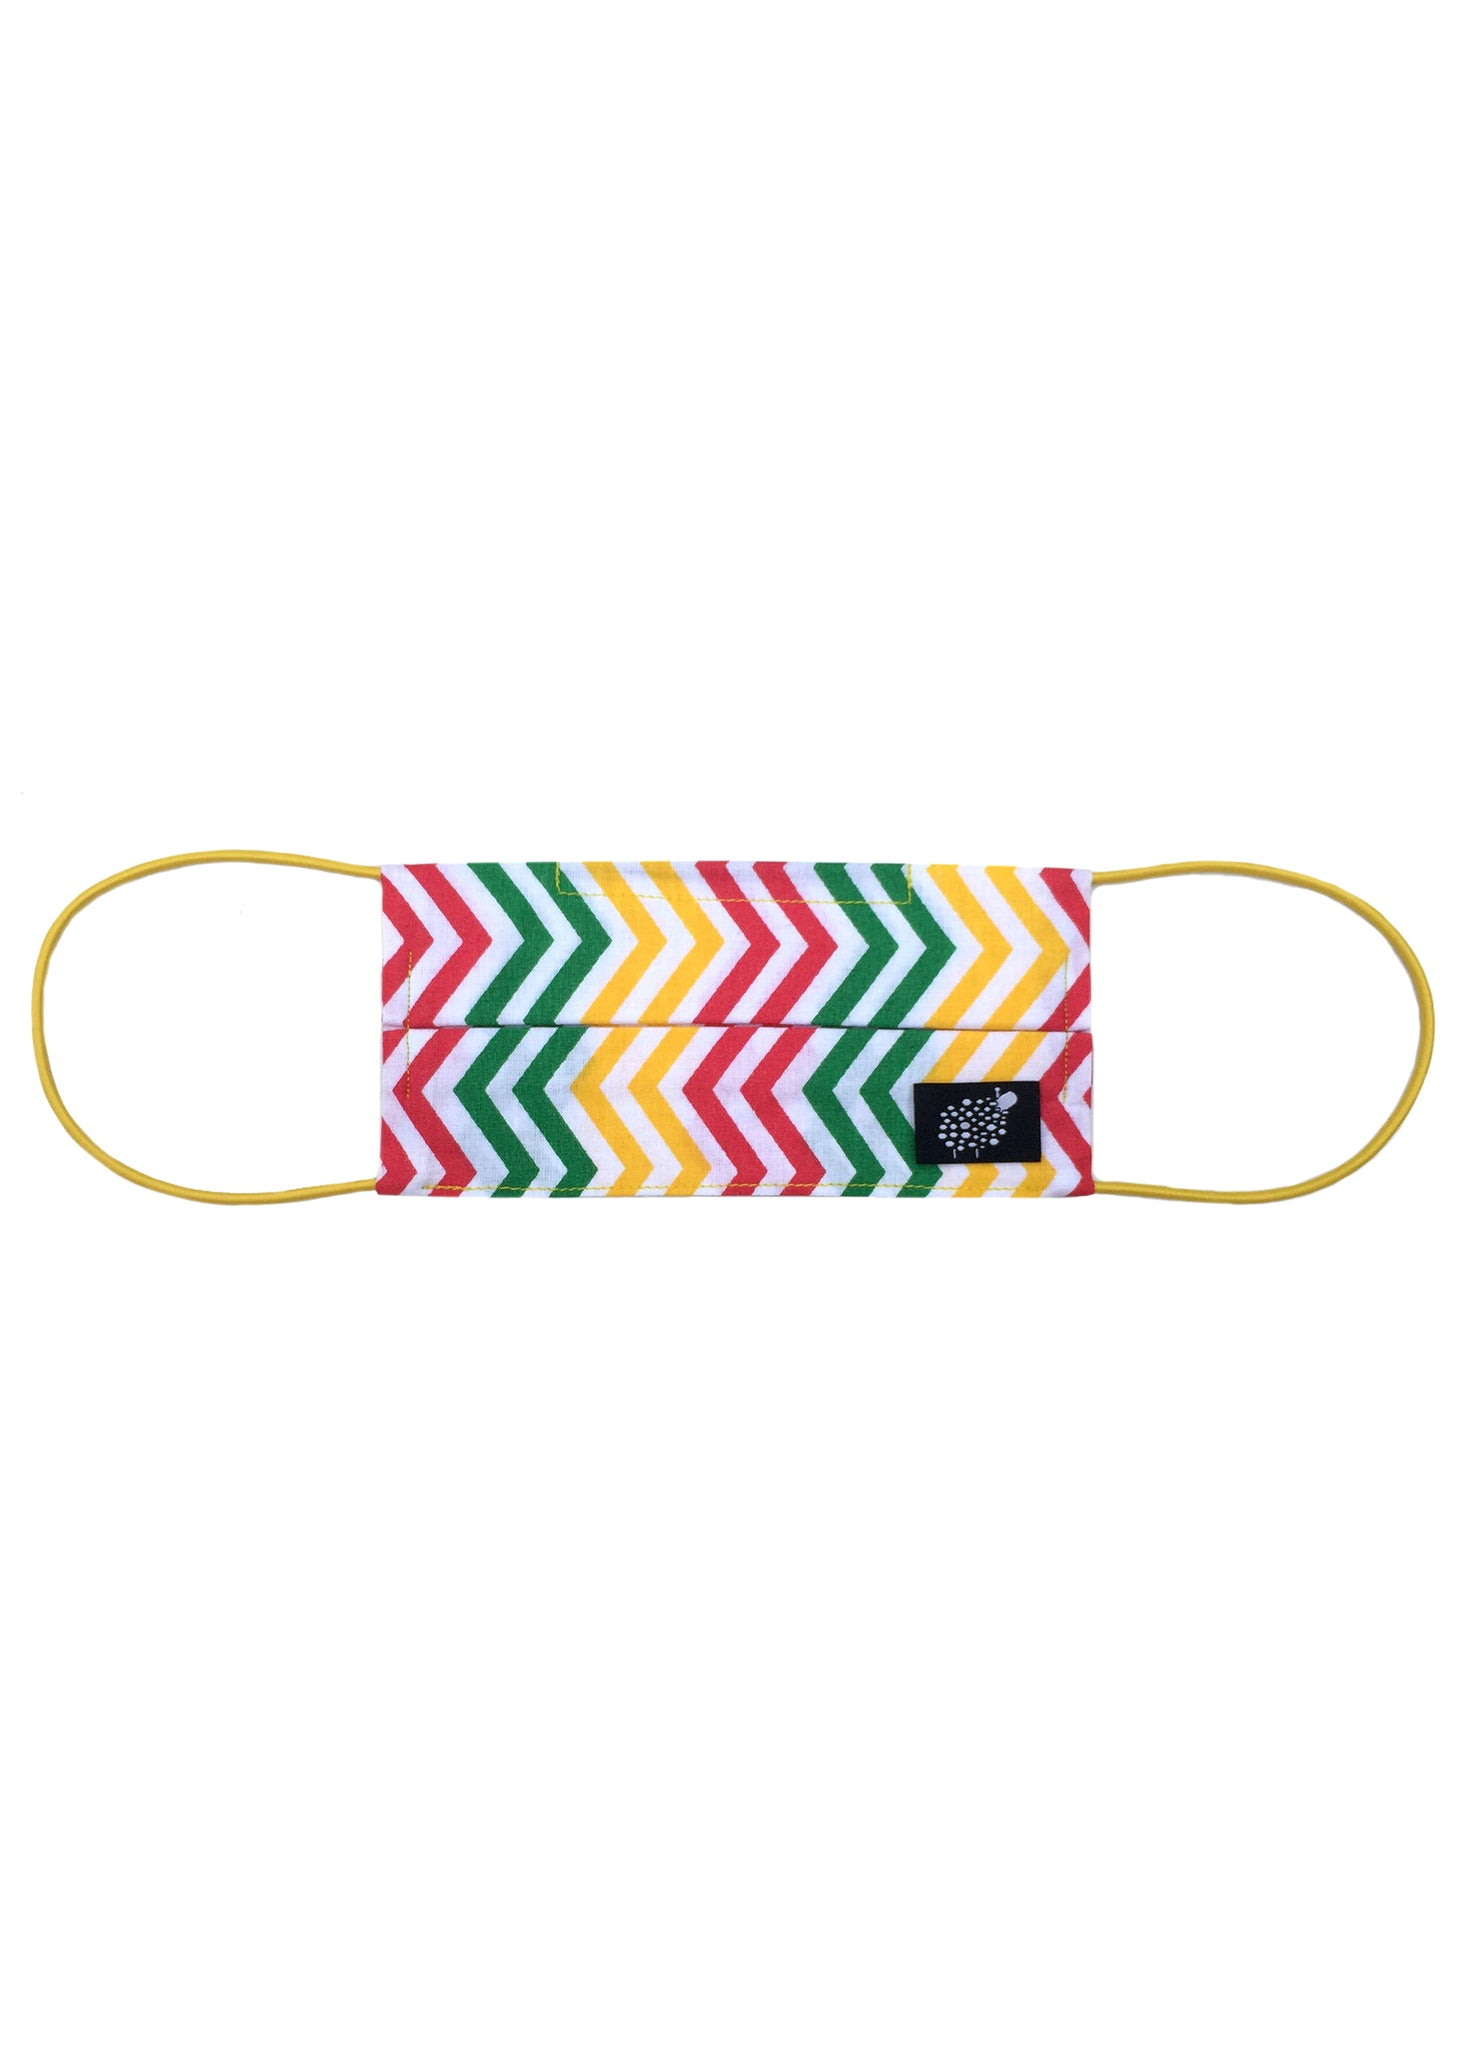 Womens 'Zigzag Rainbow' Cotton Face Mask by Electronic Sheep